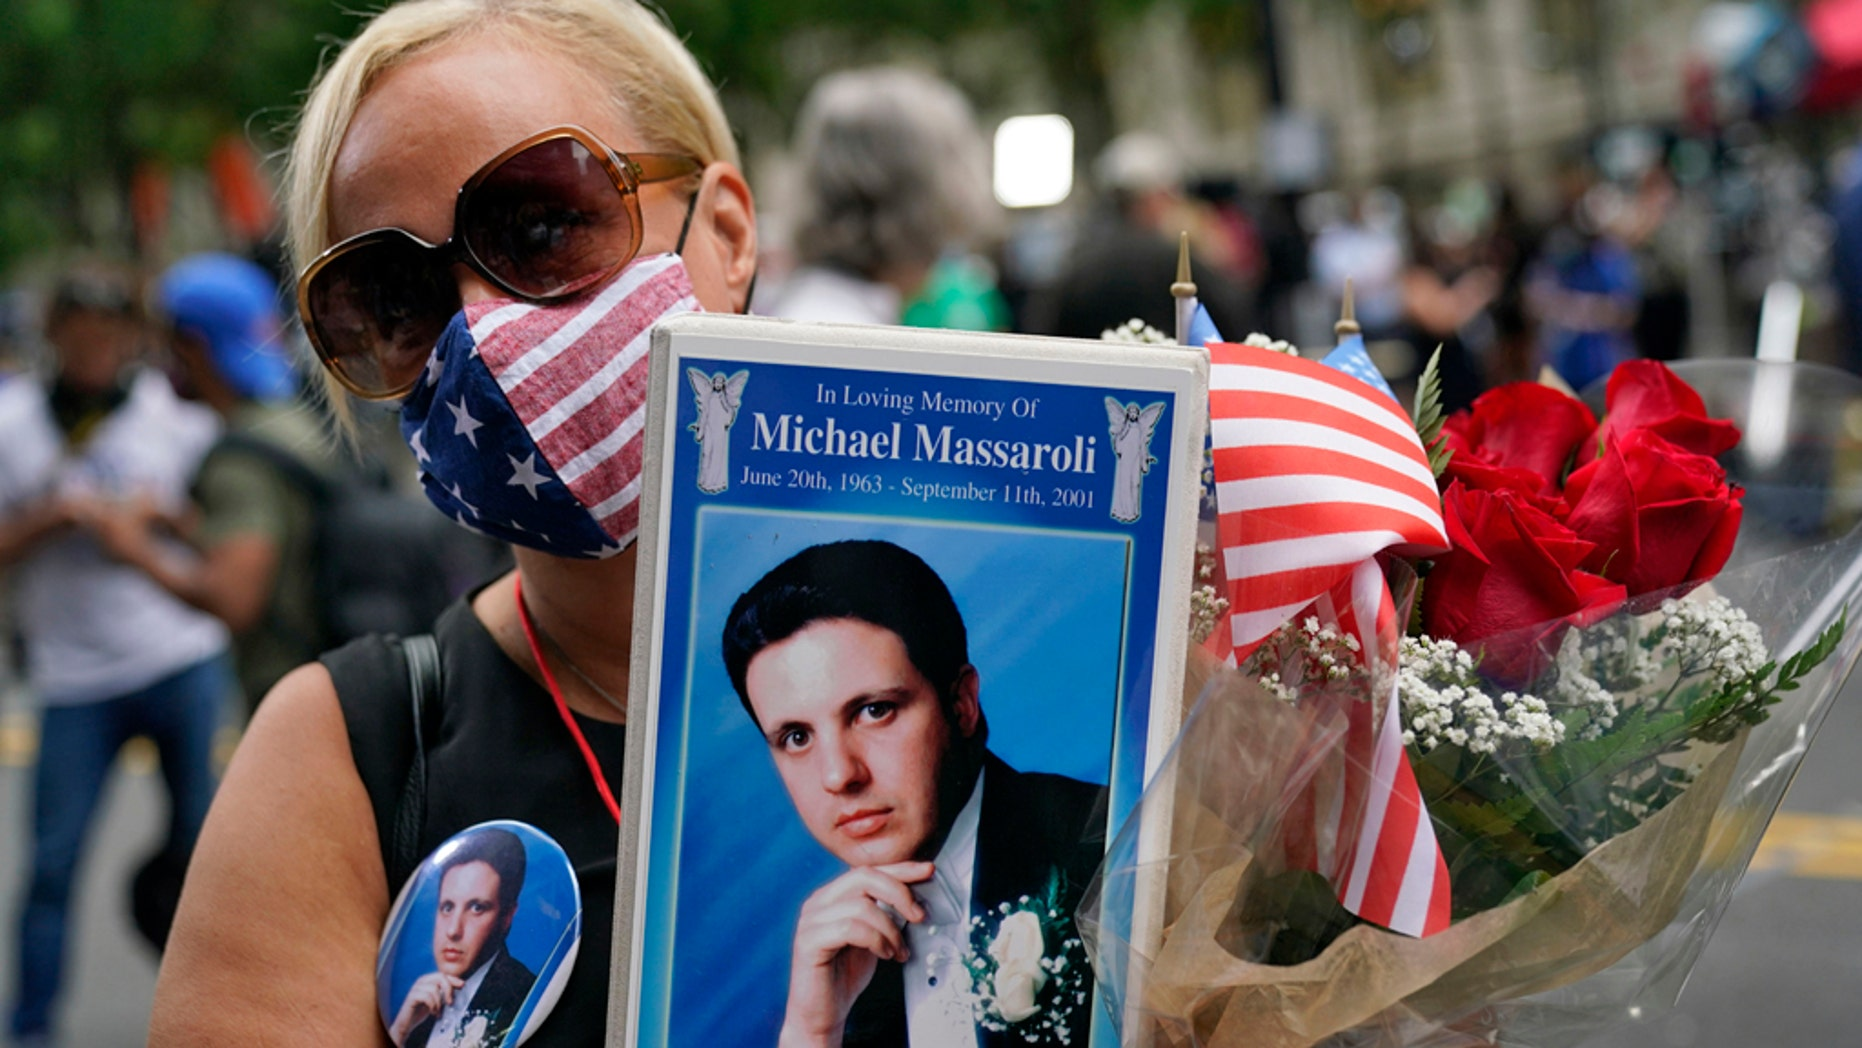 Diane Massaroli holds flowers, flags and a photo of her husband Michael Massaroli who died during the Sept. 11, 2001, attacks at the World Trade Center. (AP Photo/Mark Lennihan)